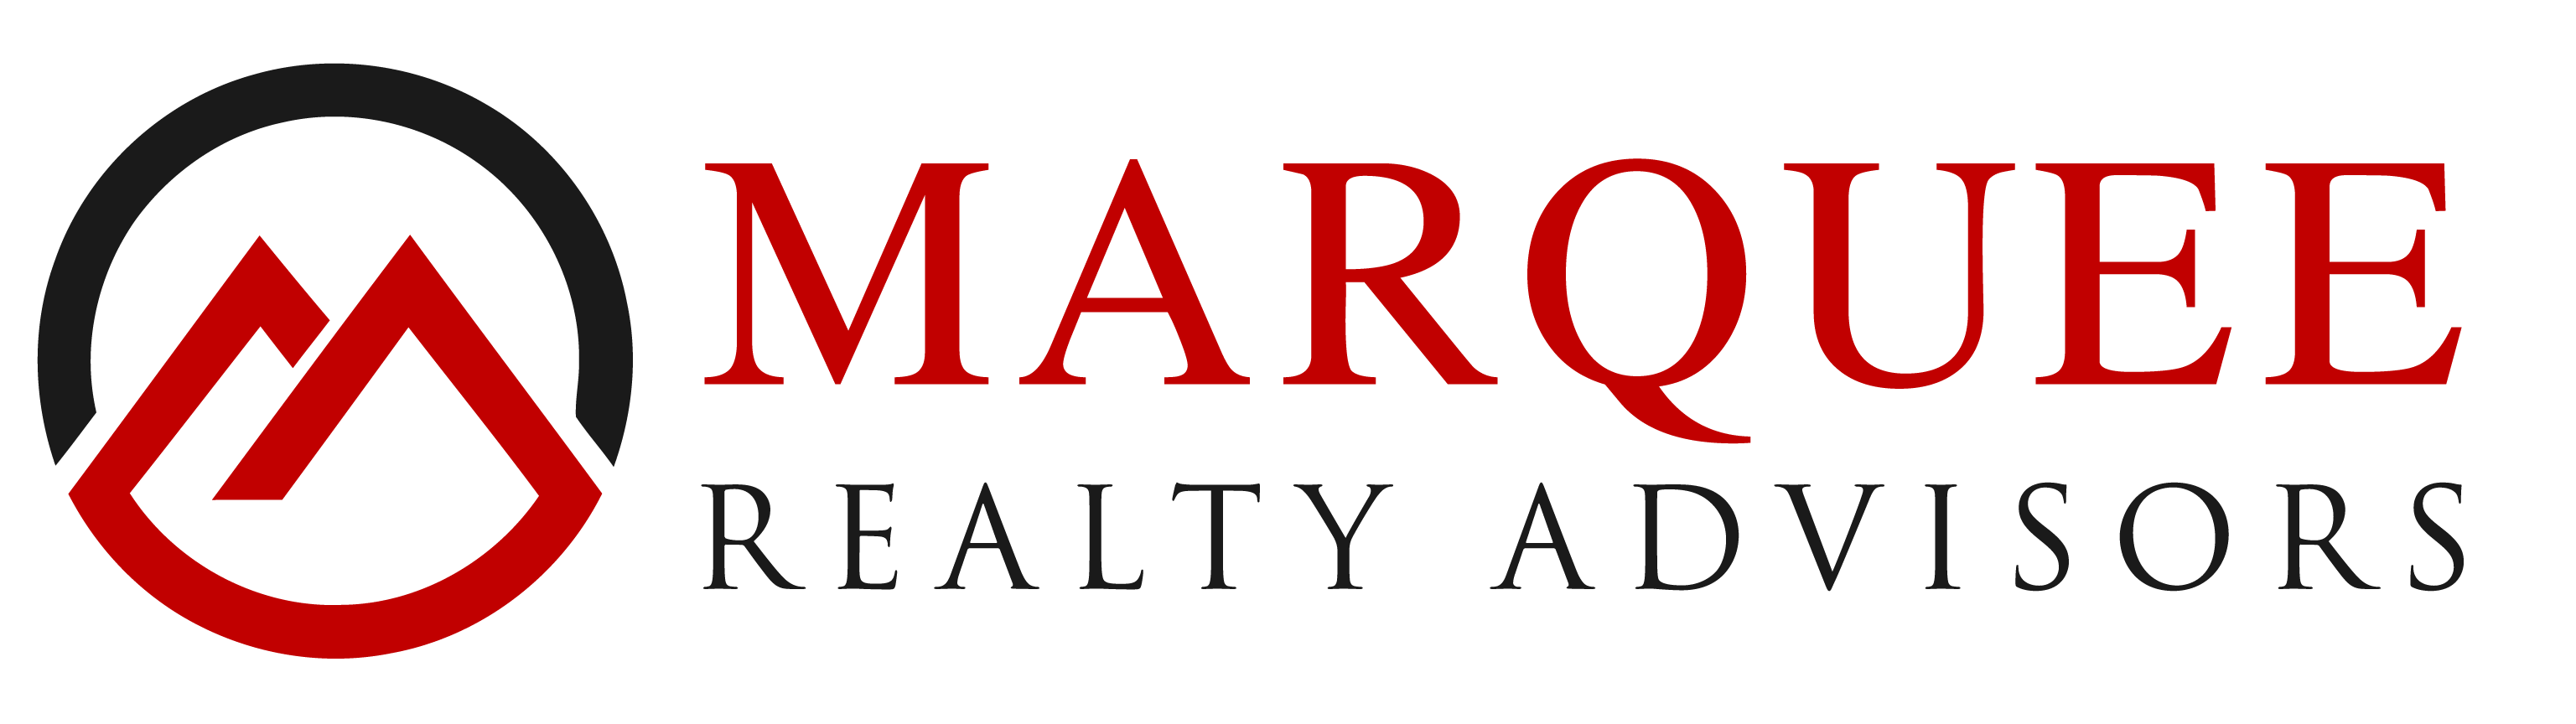 Marquee Realty Advisors Team